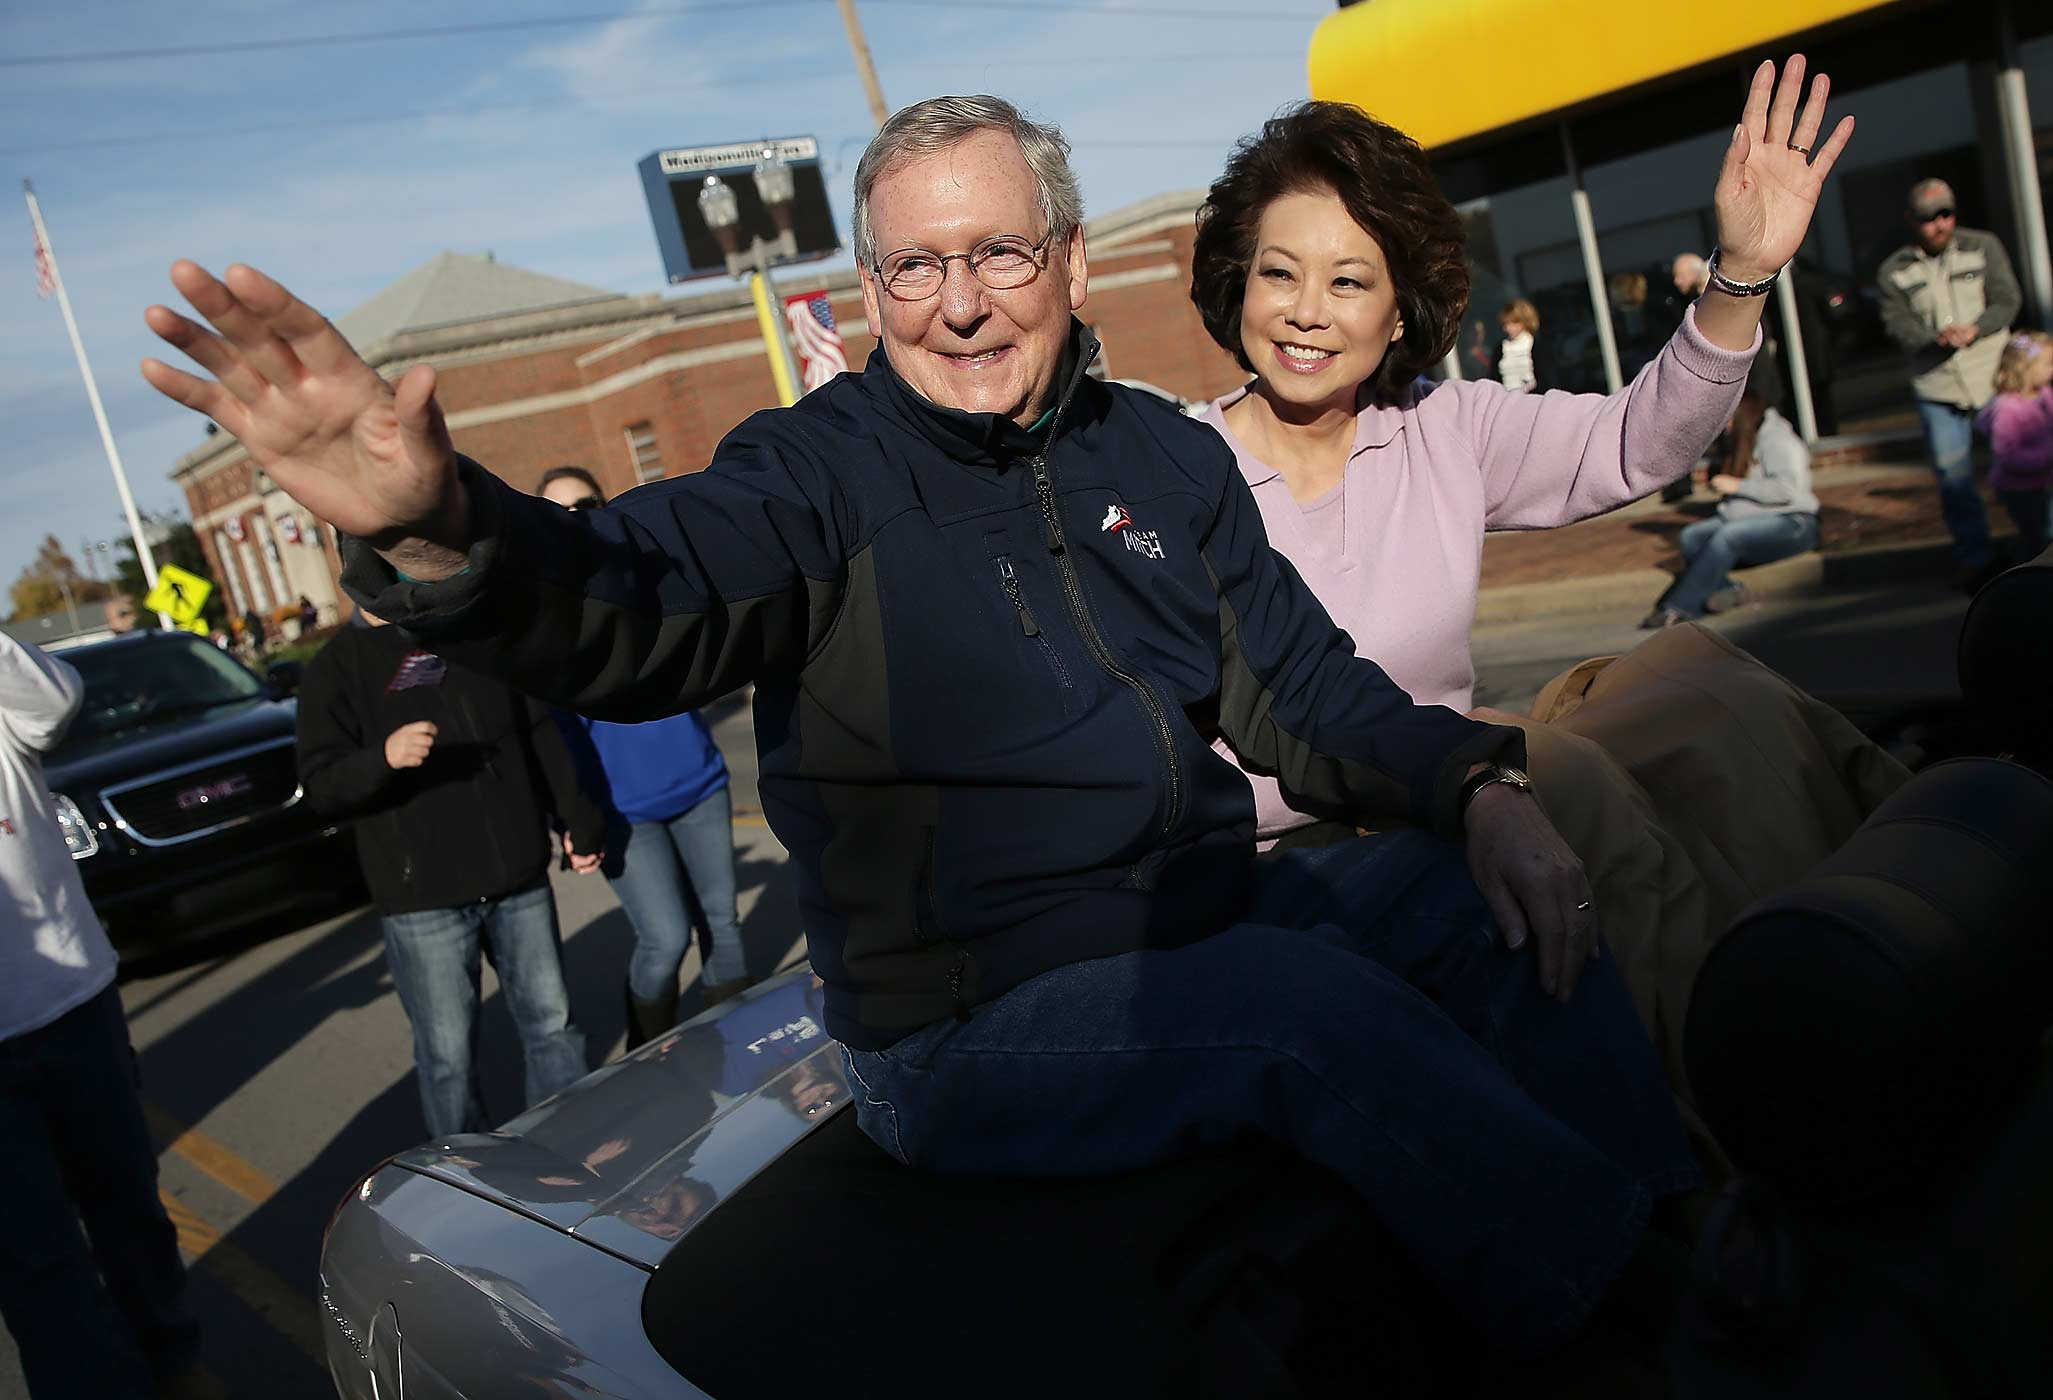 Senate Minority Leader Mitch McConnell waves while riding with his wife Elaine Chao in the Hopkins Country Veterans Day Parade on November 2, 2014 in Madisonville, Kentucky.